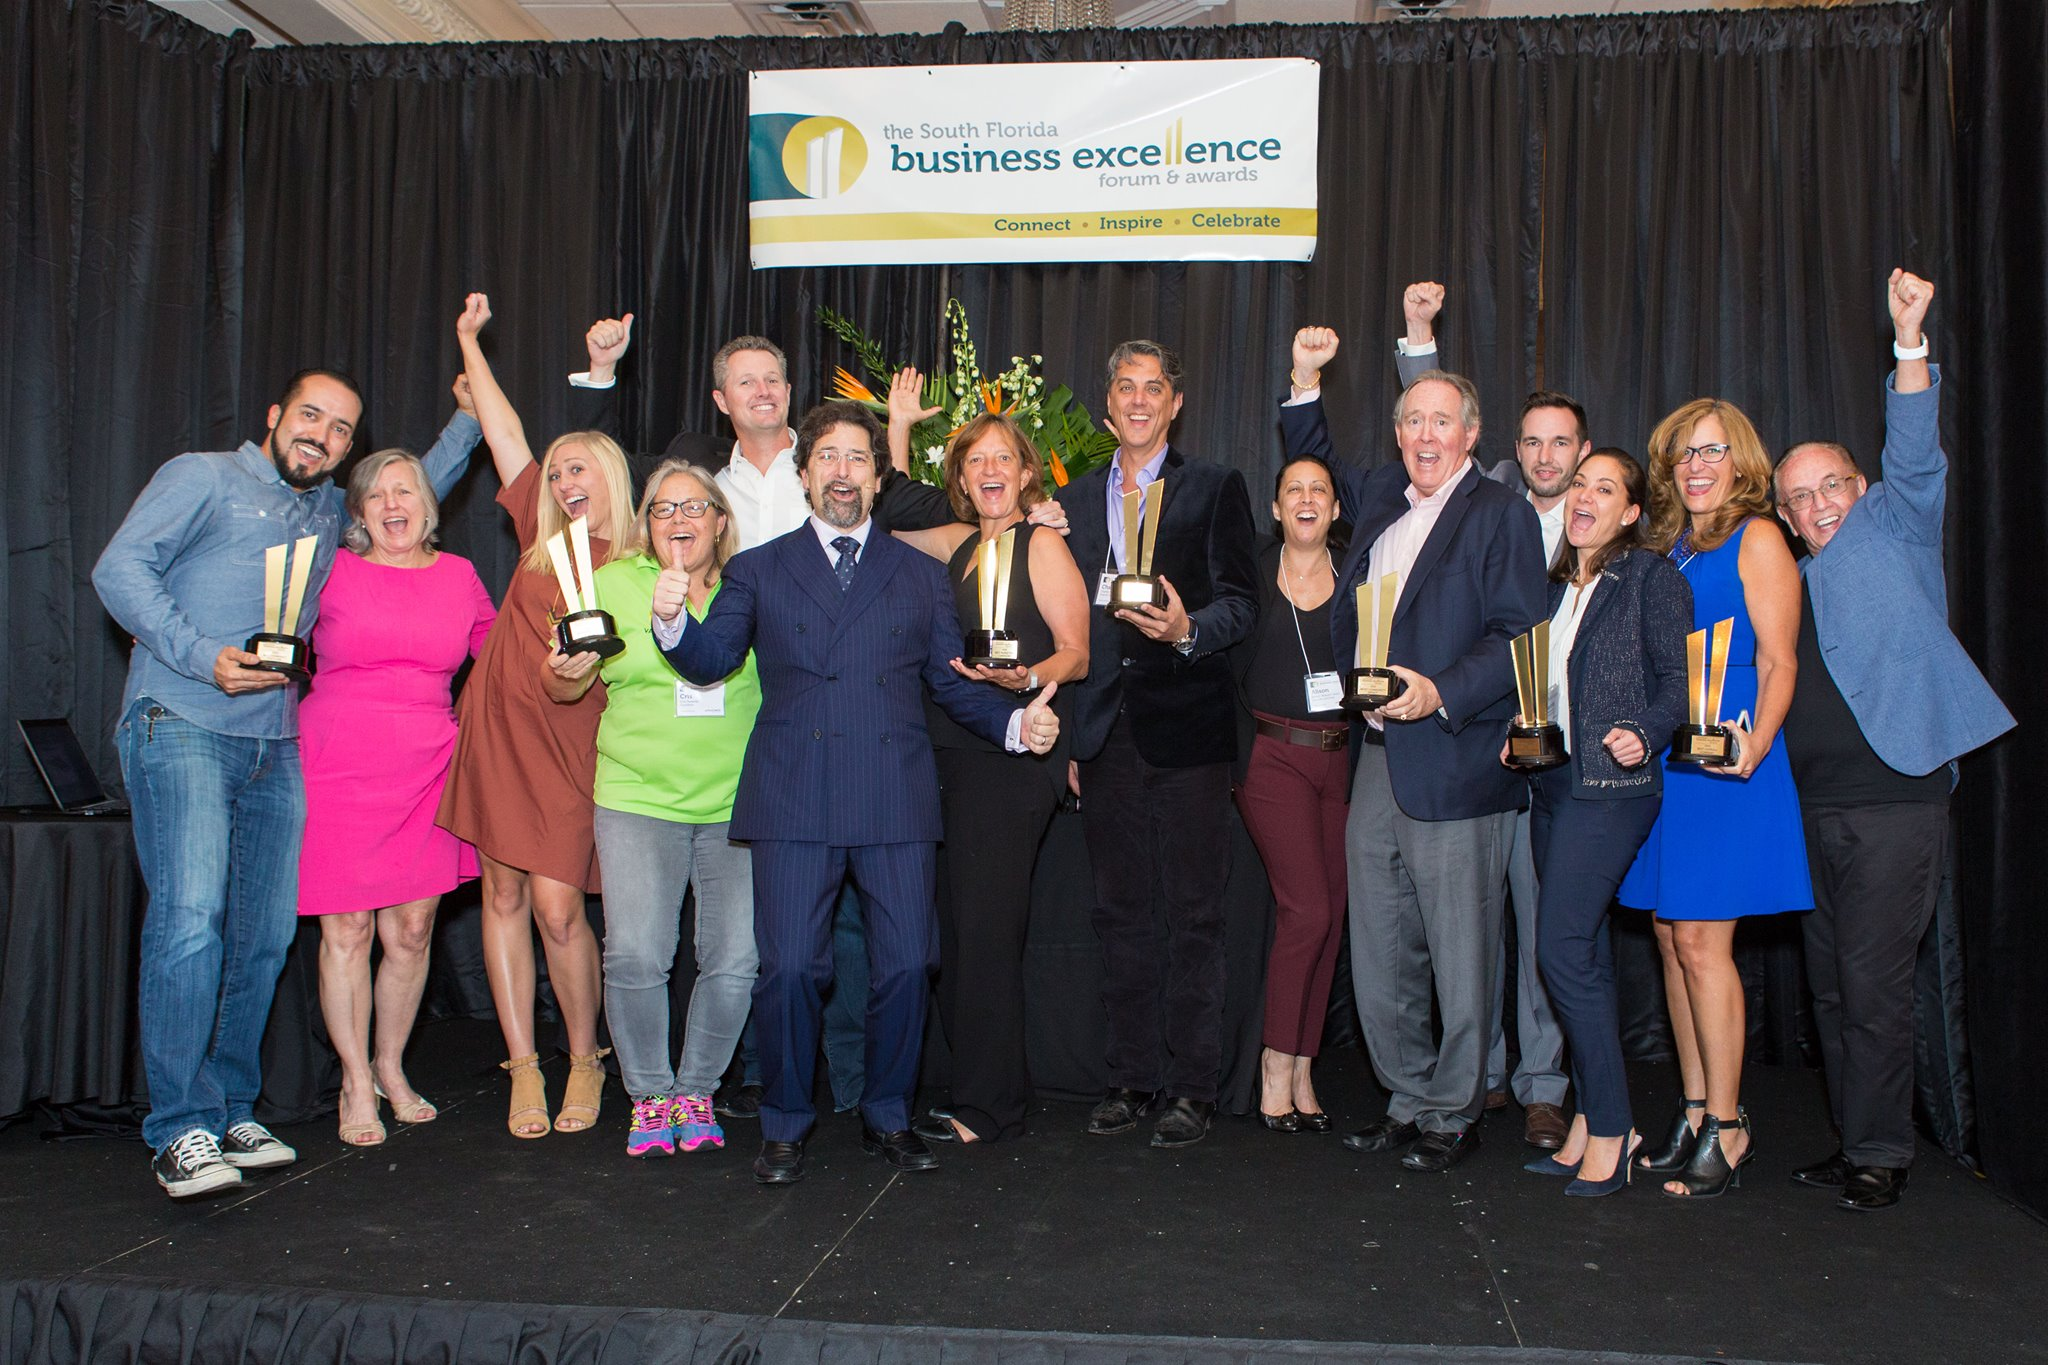 The South Florida Business Excellence Forum & Awards w/ Brad Sugars and Paul Dunn - Action Coach